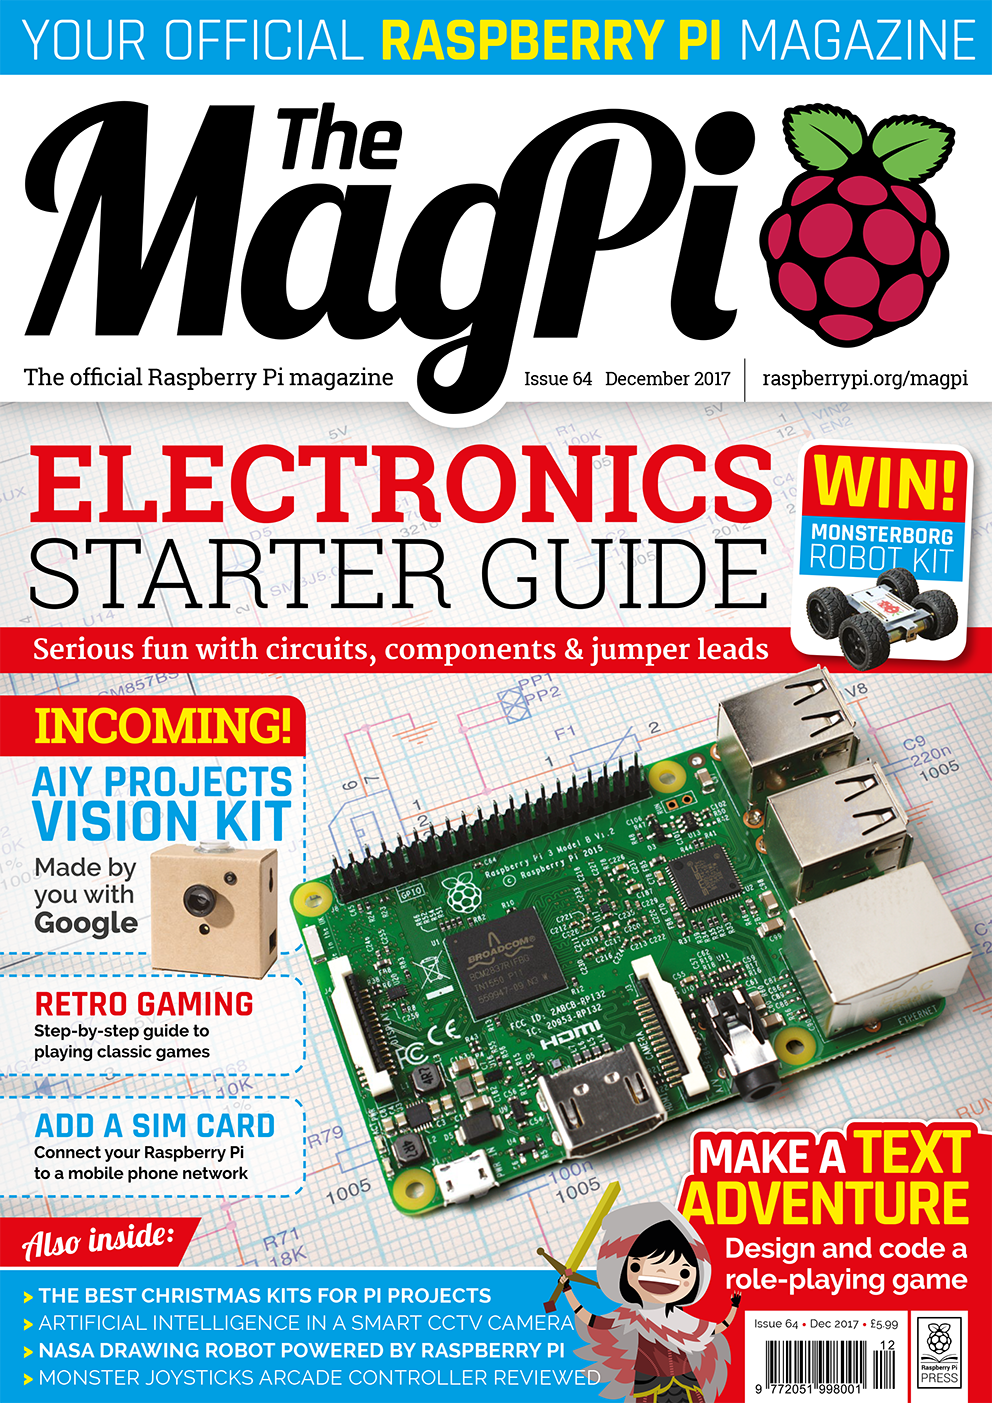 New Magpi Issue Celebrates Beginning Electronics Text Adventures Electronic Circuit Kits Uk The Of Number 64 Seeks To Be An Starter Guide With Explanation Normal Components And Some Simple Projects Get